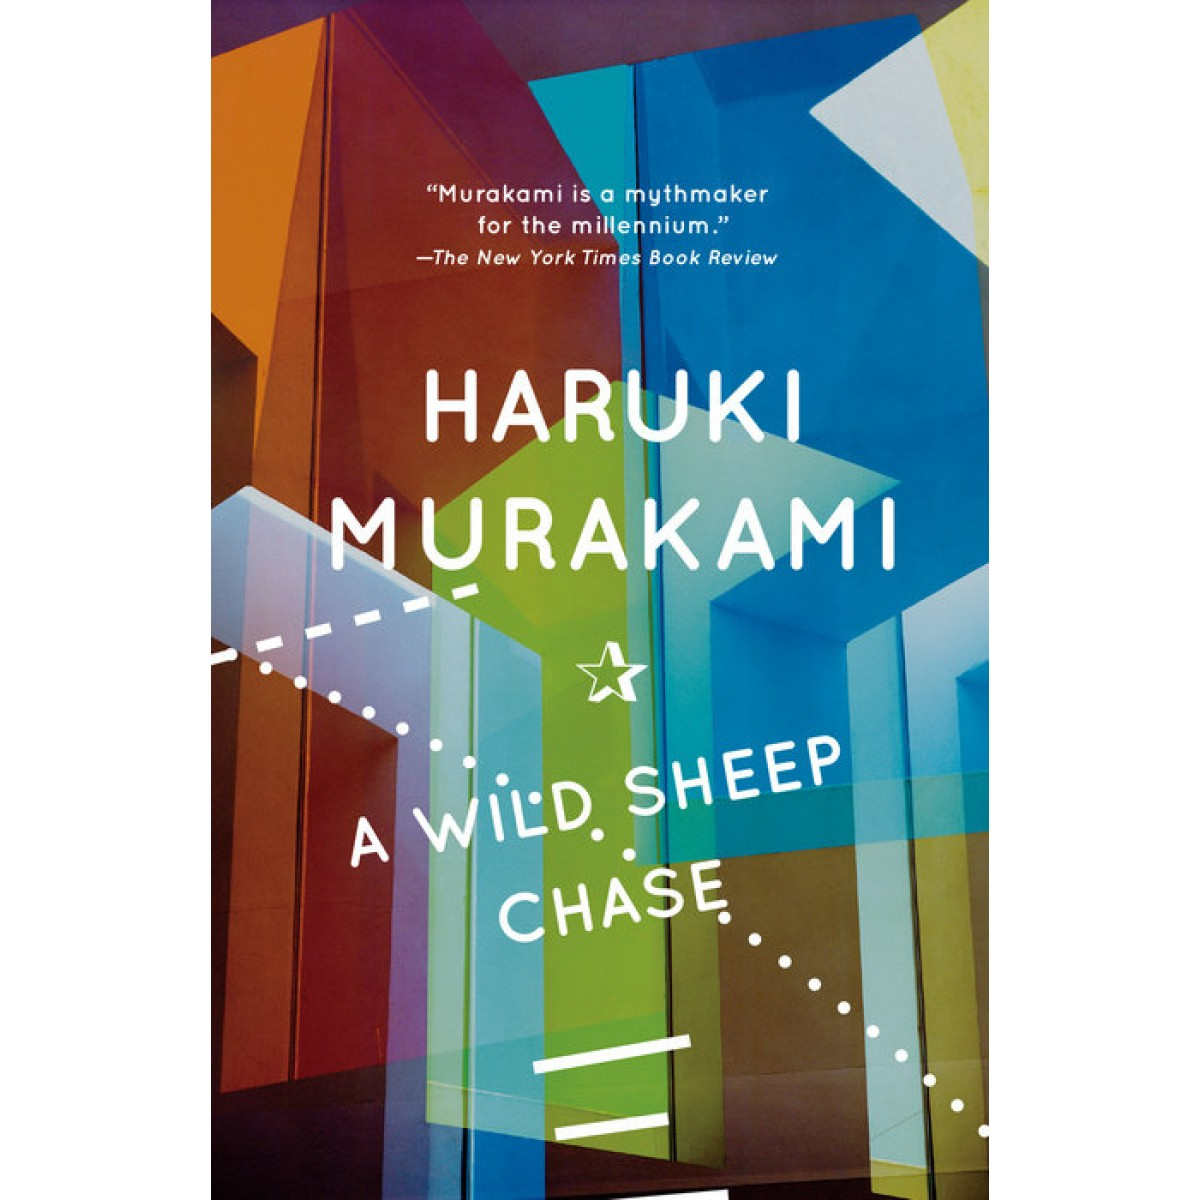 wild sheep chase essay Home → sparknotes → short story study guides → super-frog saves tokyo → context super-frog saves tokyo haruki murakami 1973 (1980) and a wild sheep.